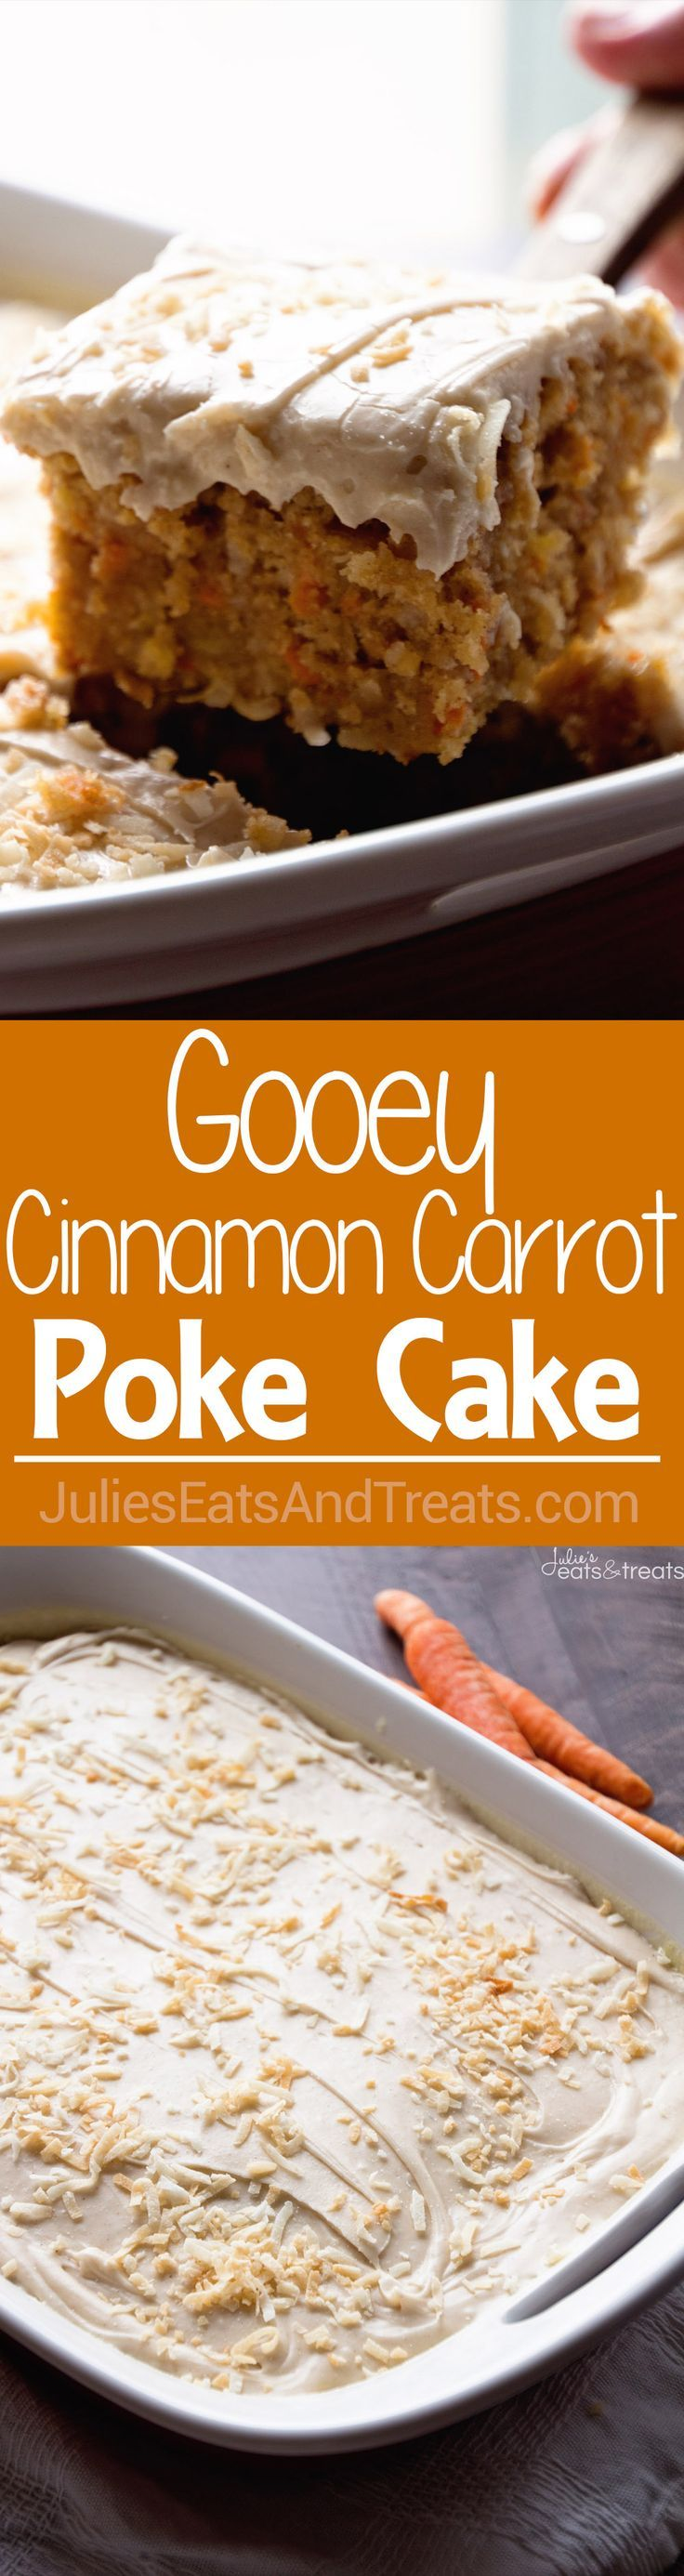 Gooey Cinnamon Carrot Poke Cake ~ Amazingly Moist Cake Stuffed with Carrots, Coconut, Pineapple, Topped with a  Buttermilk Glaze and Cinnamon Cream Cheese Frosting! http://www.julieseatsandtreats.com/gooey-cinnamon-carrot-poke-cake/